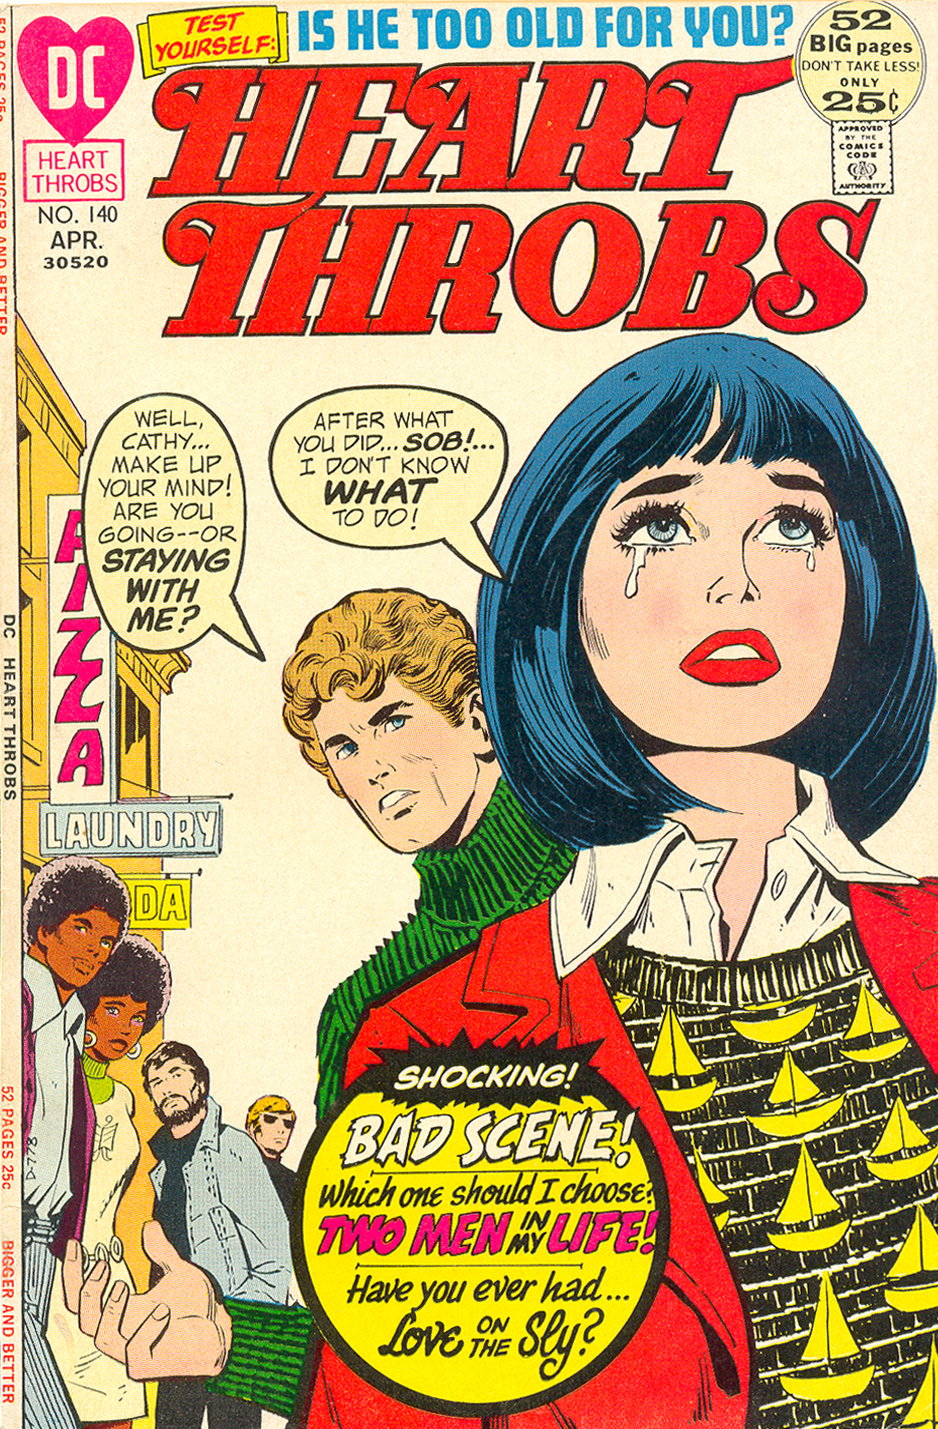 Heart Throbs DC Comics cautionary tale about prejudice and racism romance story